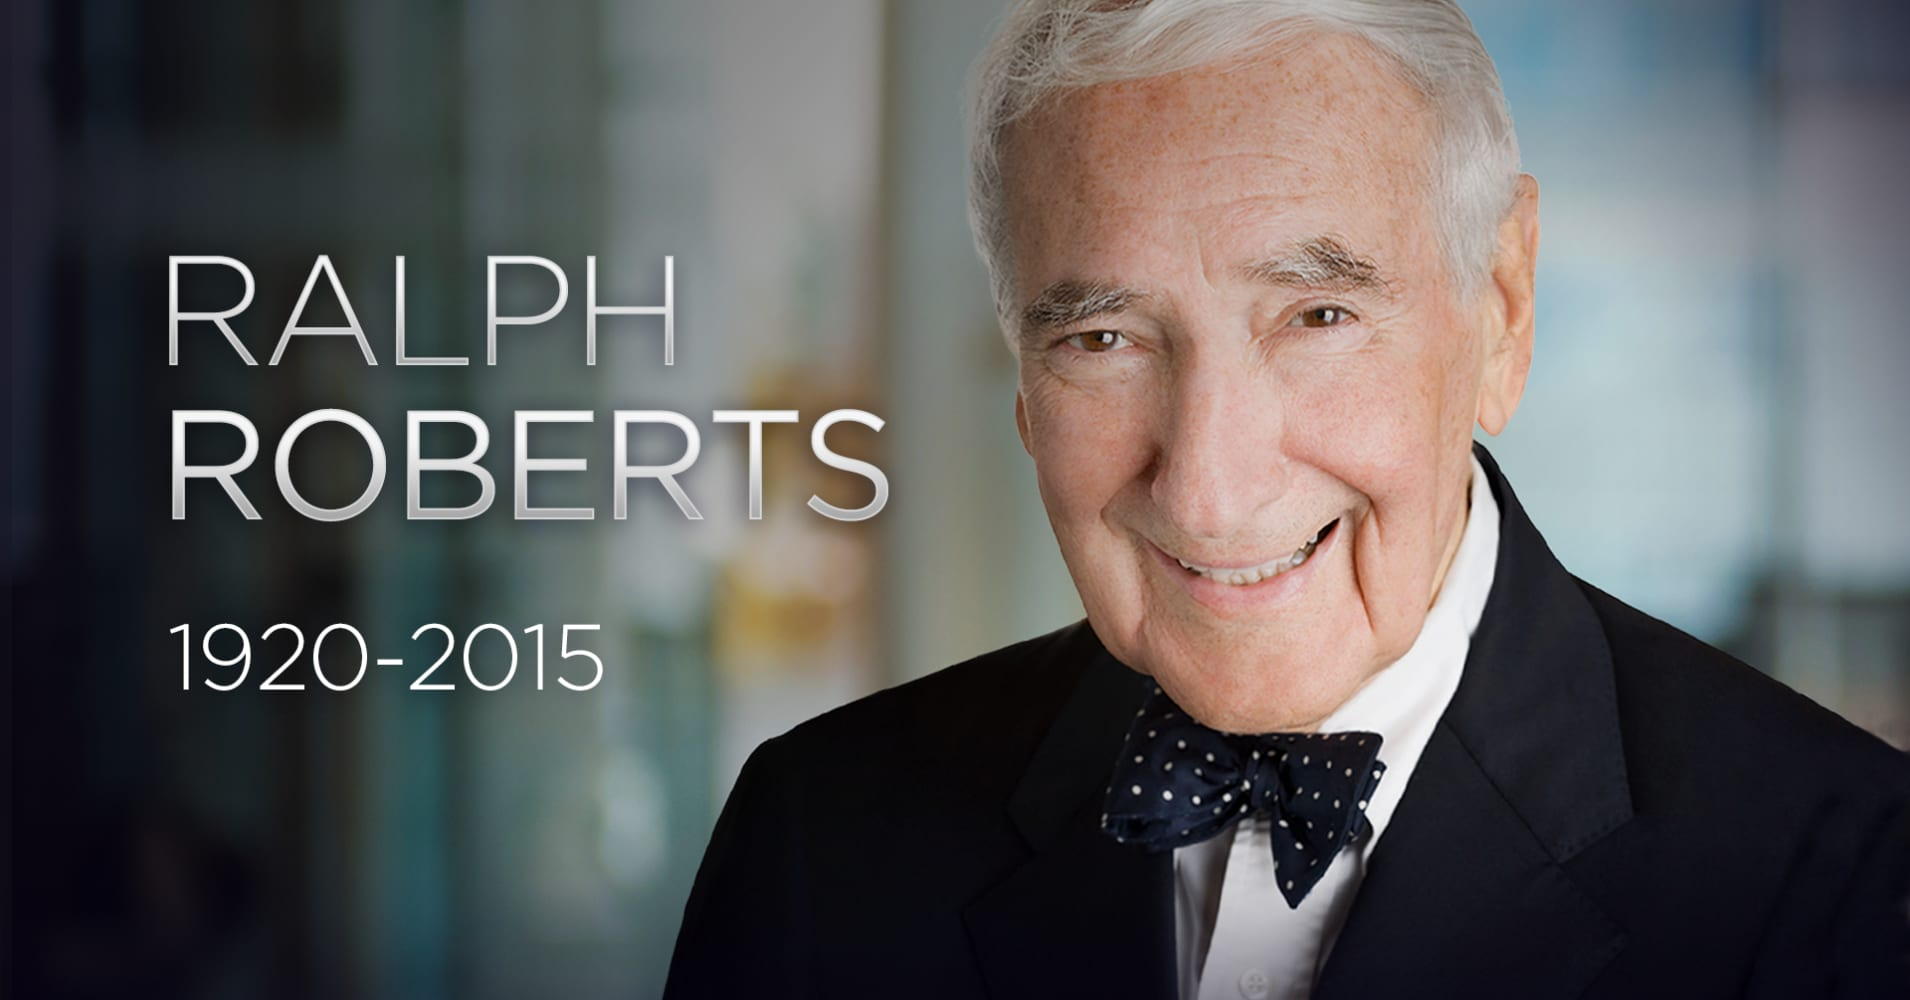 Comcast Tv And Internet >> Comcast founder Ralph Roberts dies at 95